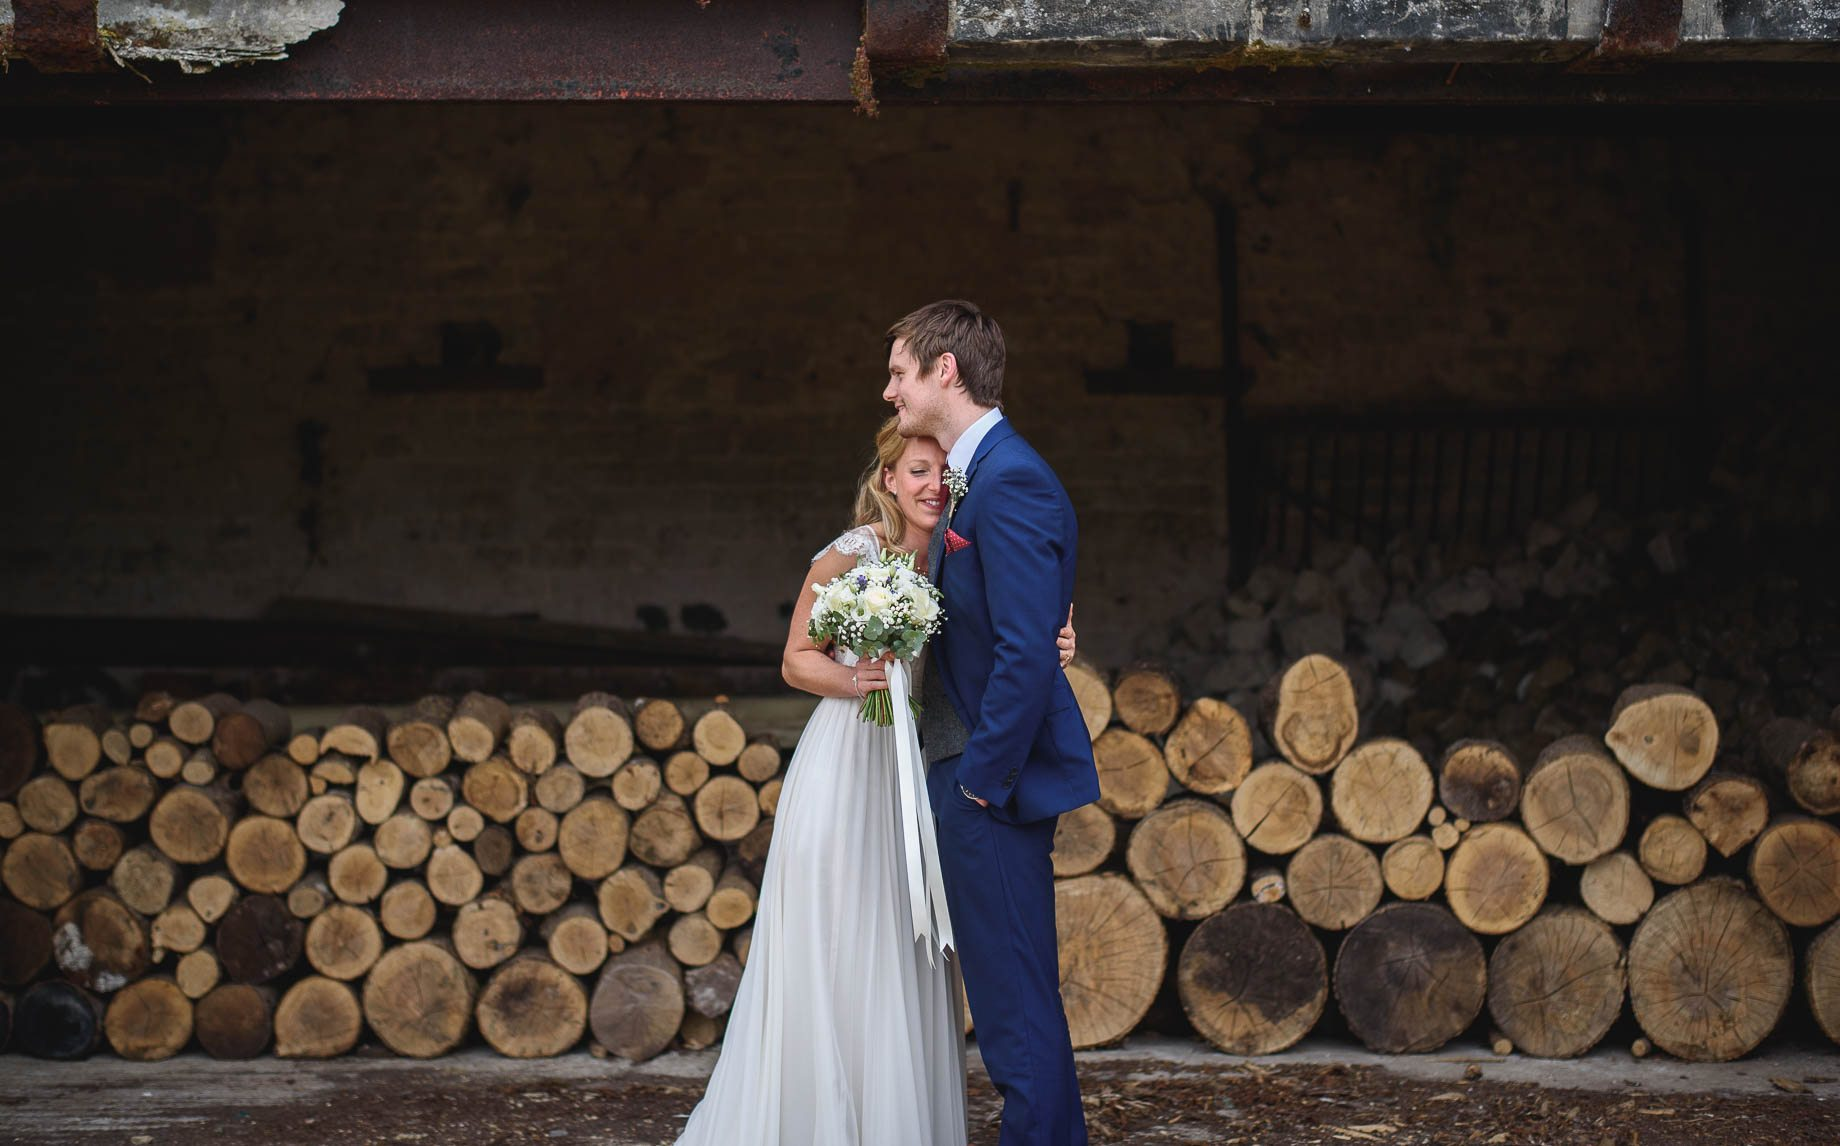 Bury Court Barn wedding photography by Guy Collier - Heather and Pat (86 of 170)